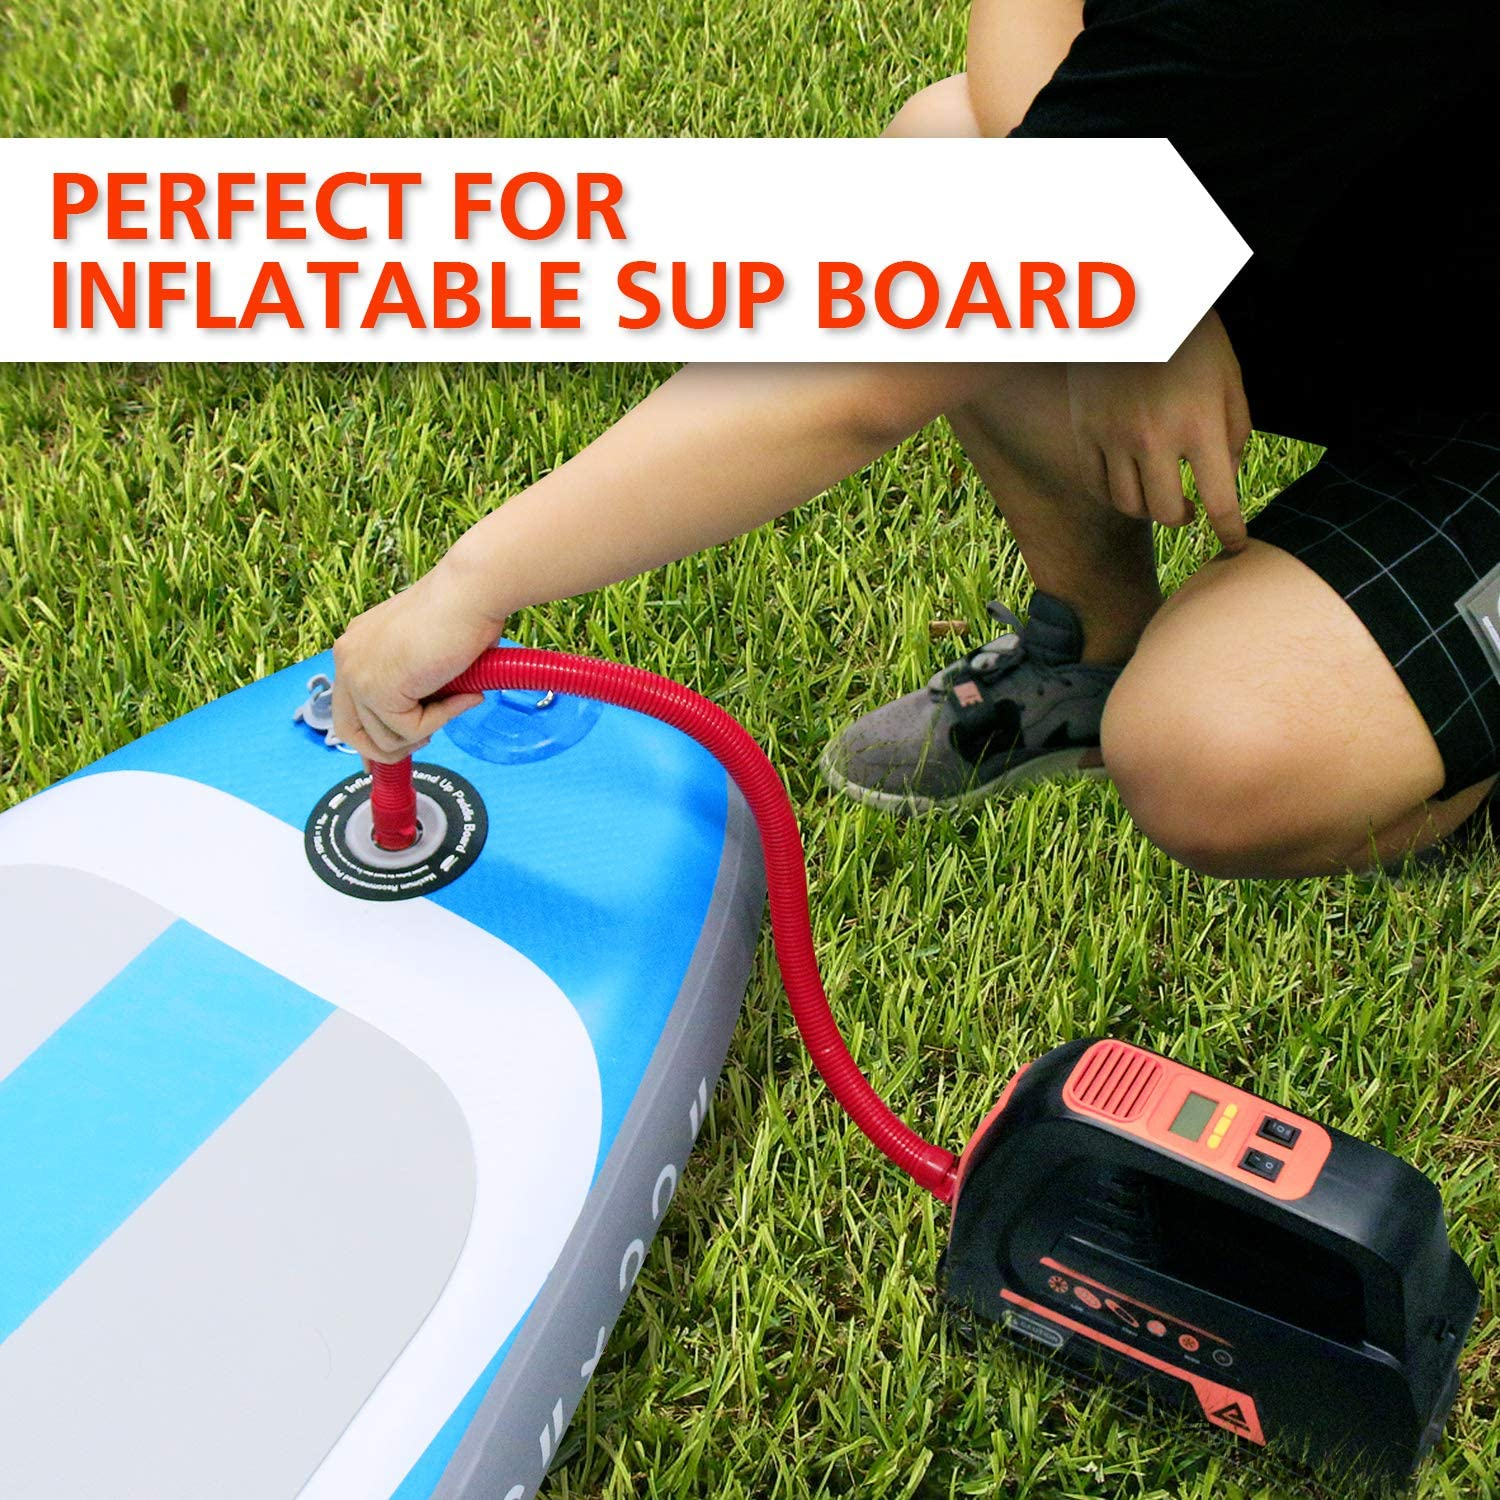 Tent Great for Inflatable Stand Up Paddle Boards Air Mattresses and Tyre Water Sports Float Leader Accessories SUP Electric High Air Pump Vehicle-Mounted Dual Use 12V DC Car Connector Kayaks